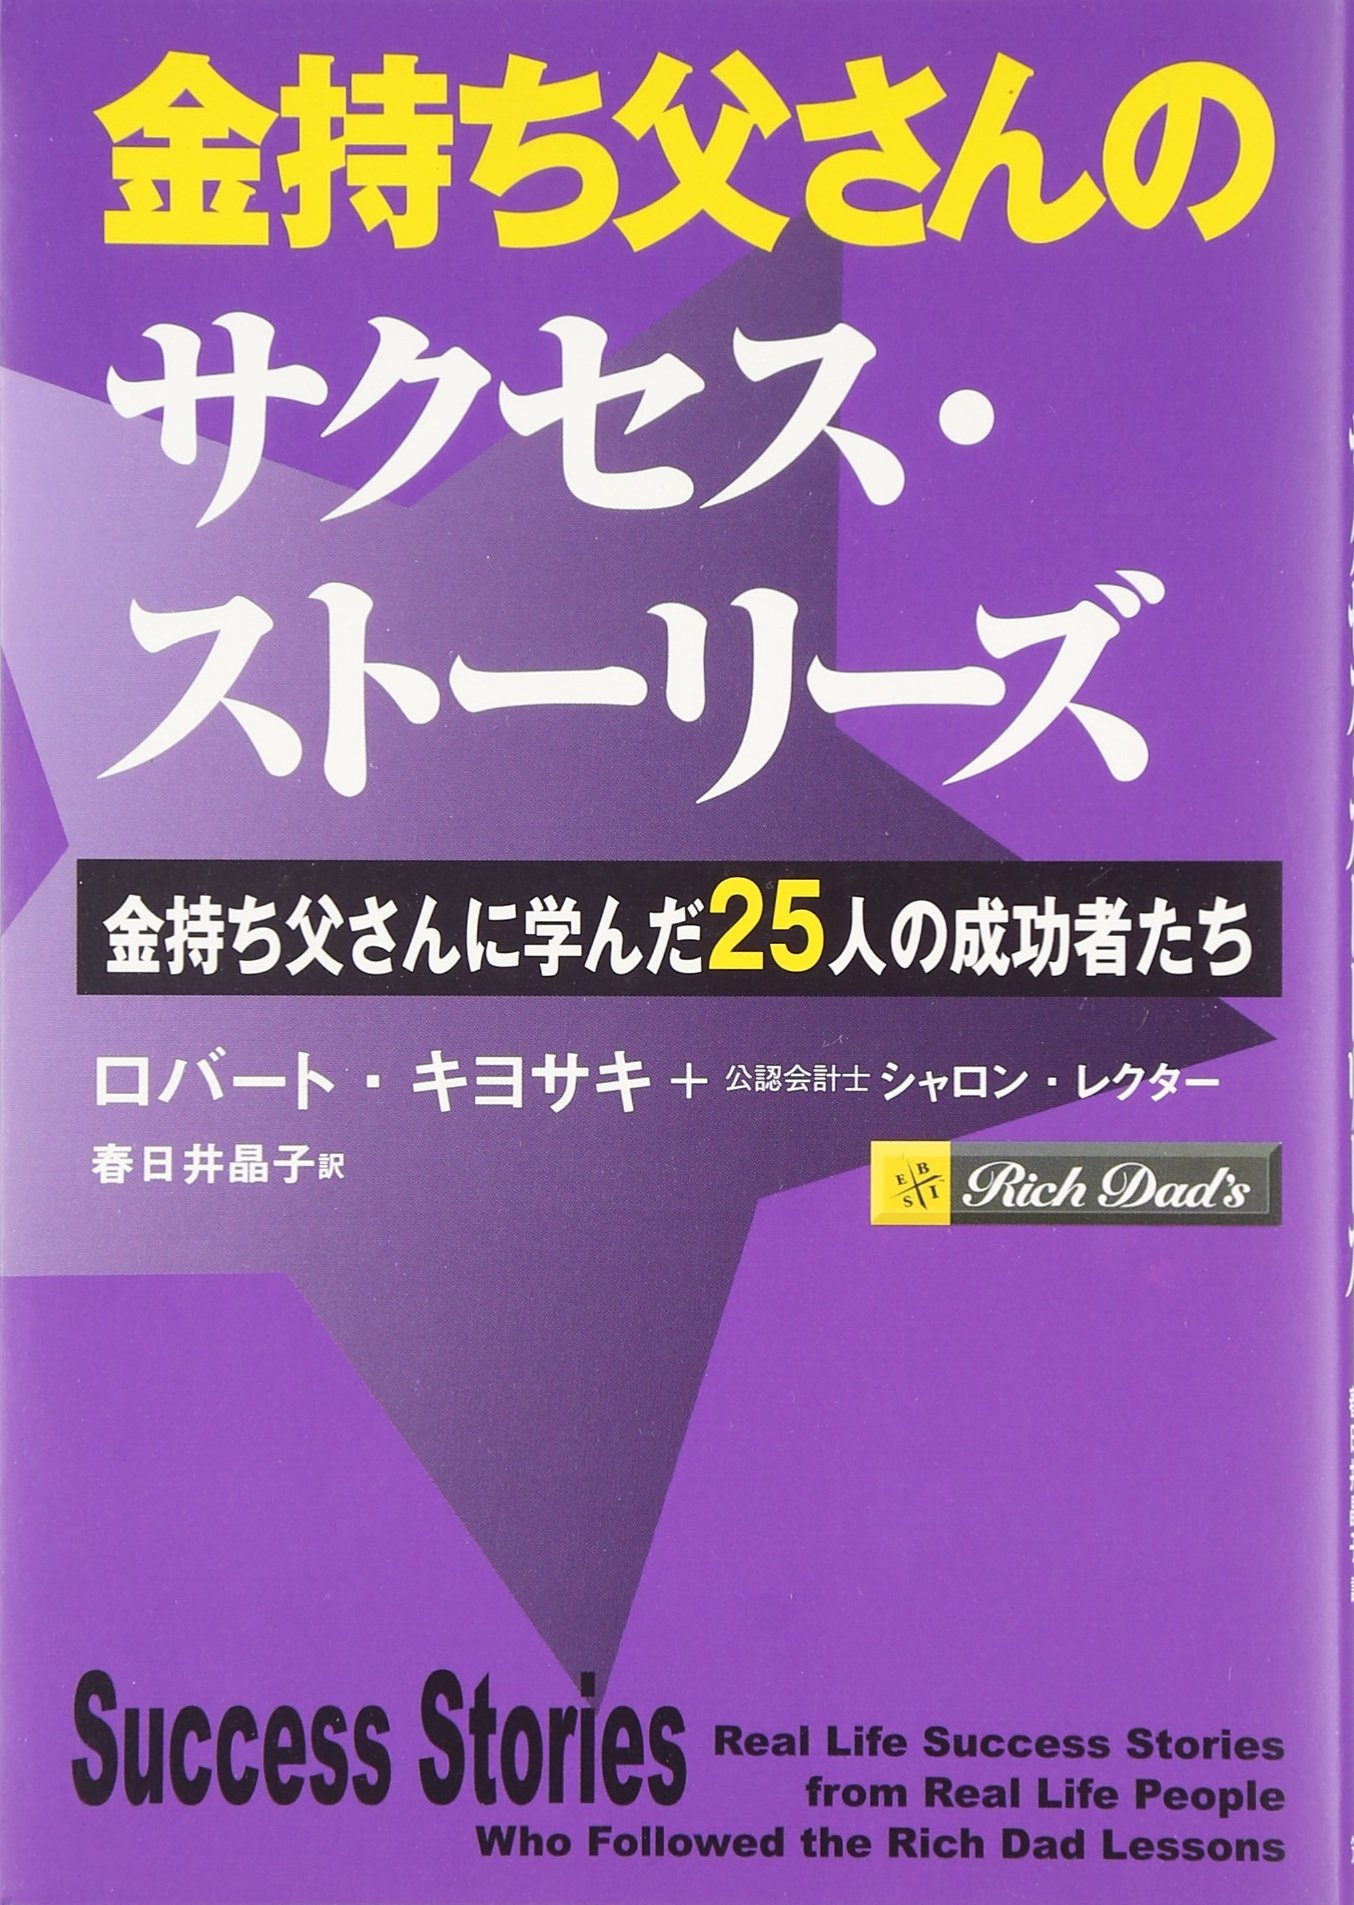 Rich Dad's Success Stories: Real Life Success Stories From Real Life People Who Followed the Rich Dad Lessons [In Japanese Language]